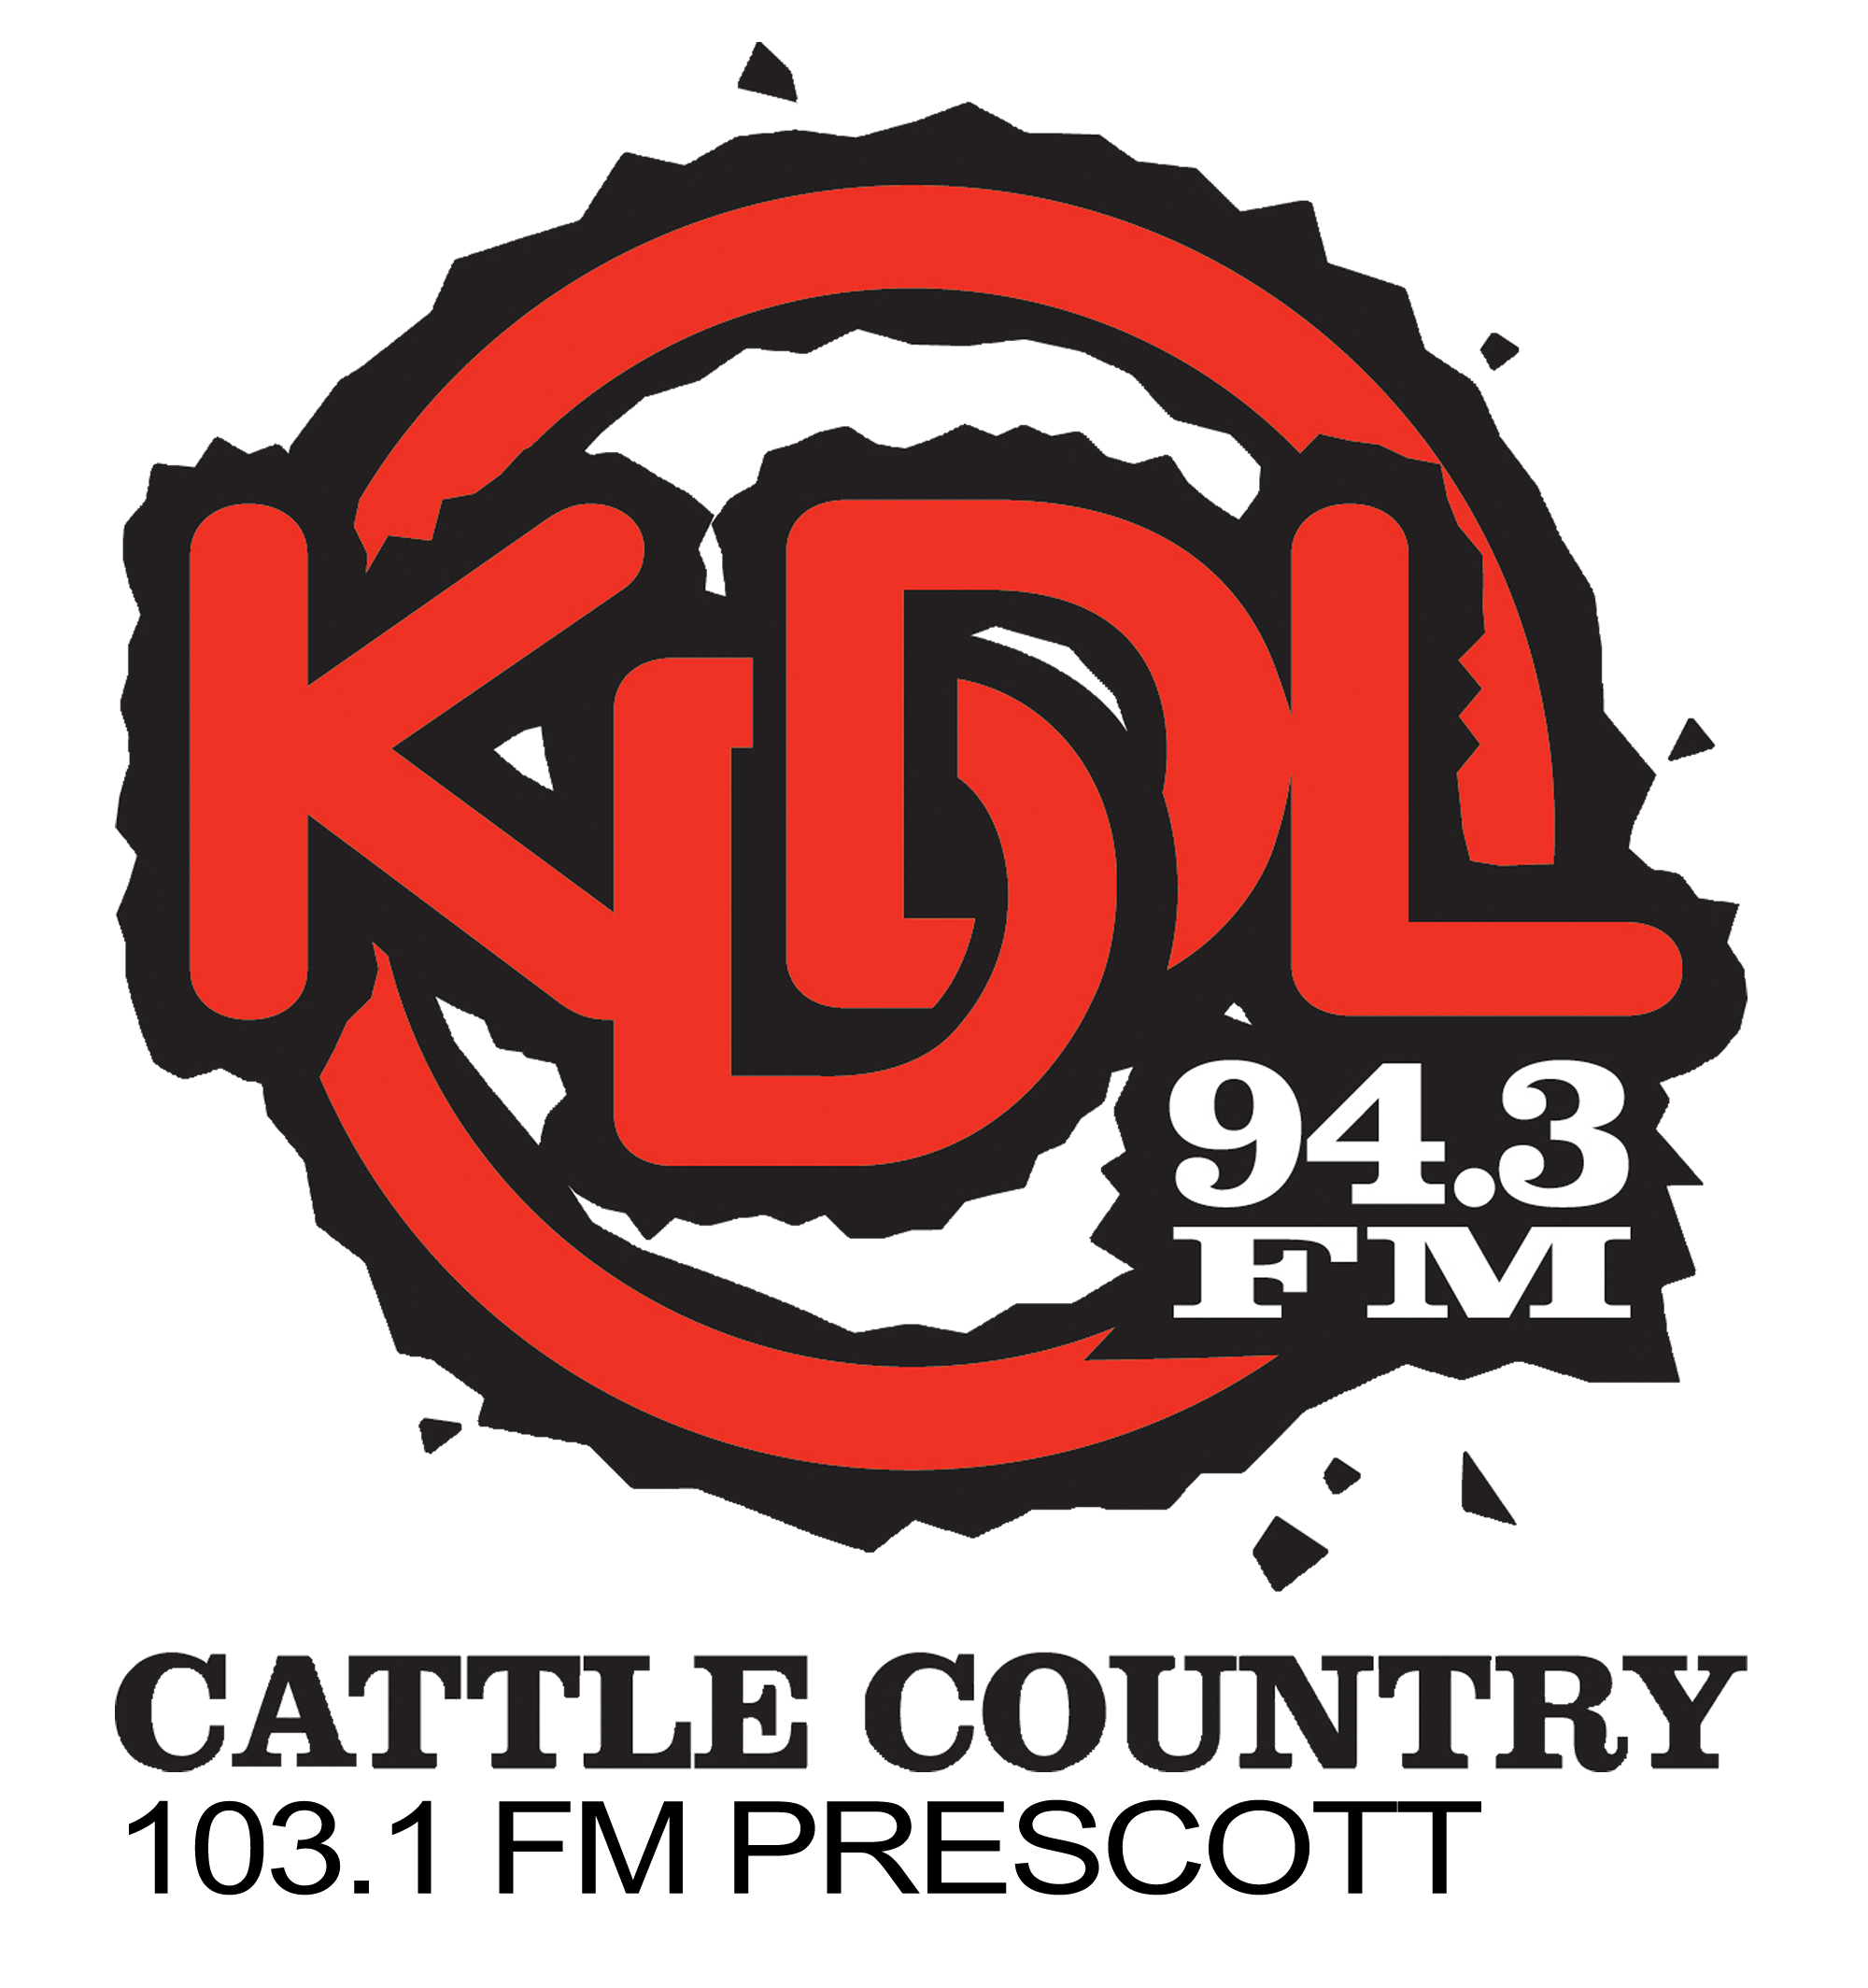 KDDL 94.3FM - CATTLE COUNTRY RADIO